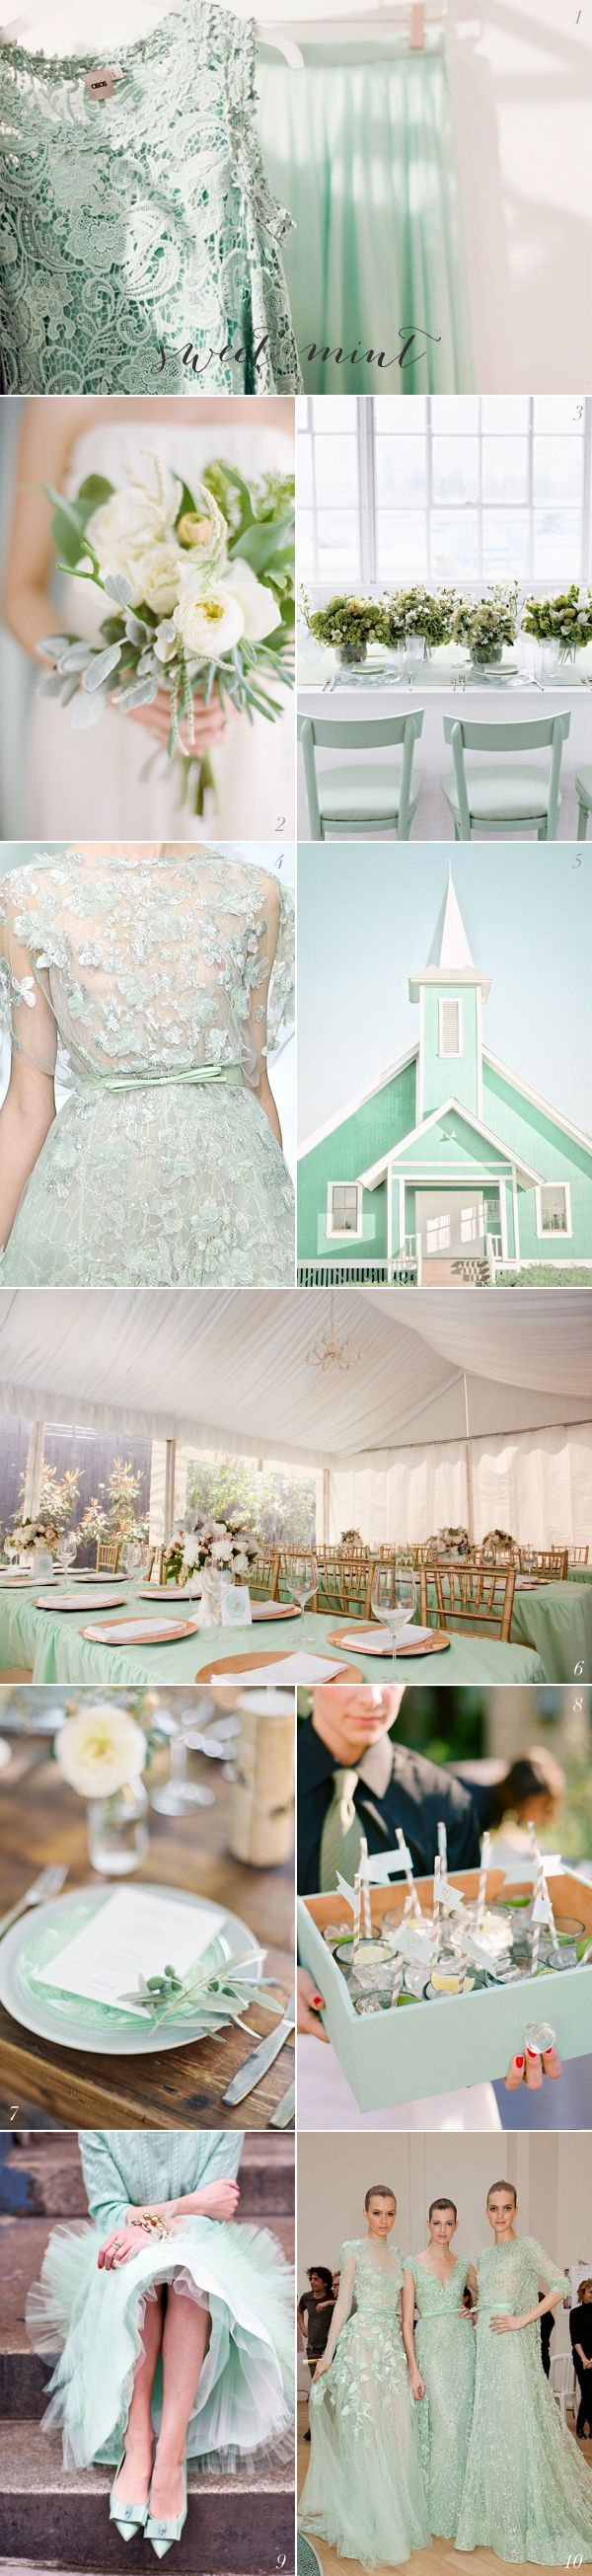 Mint wedding chapel & reception ideas #Mint / pastel green Wedding Reception ... Wedding ideas for brides, grooms, parents & planners ... https://itunes.apple.com/us/app/the-gold-wedding-planner/id498112599?ls=1=8 … plus how to organise an entire wedding ♥ The Gold Wedding Planner iPhone App ♥